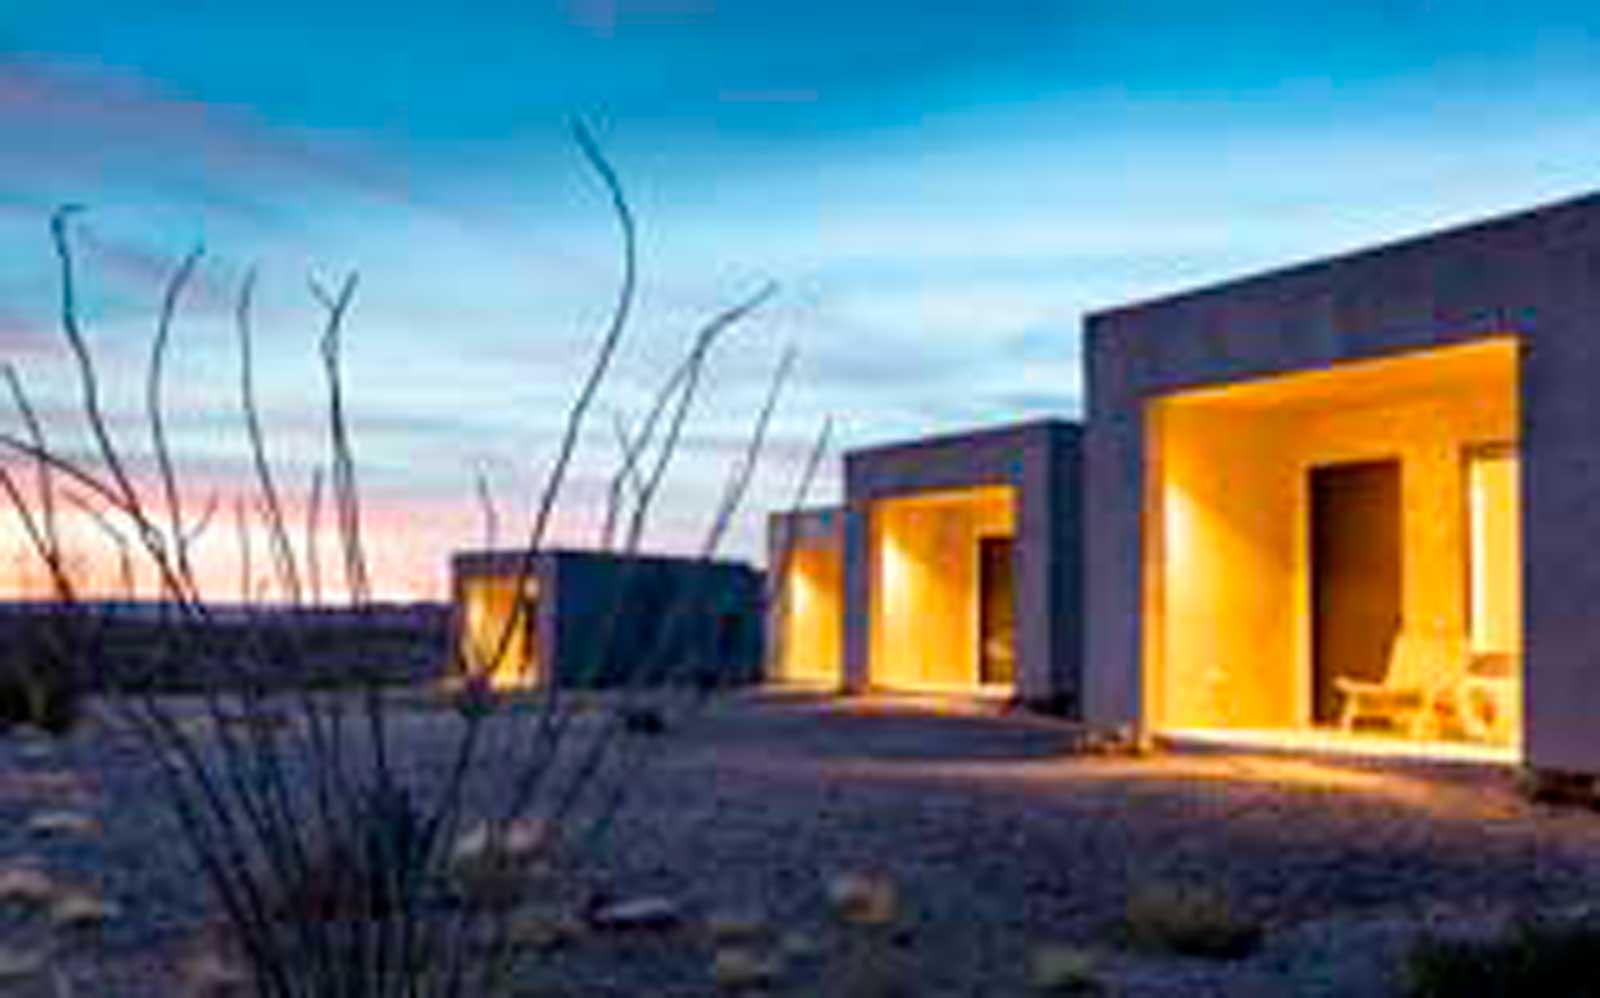 Bungalow exteriors at Willow House, Terlingua, TX